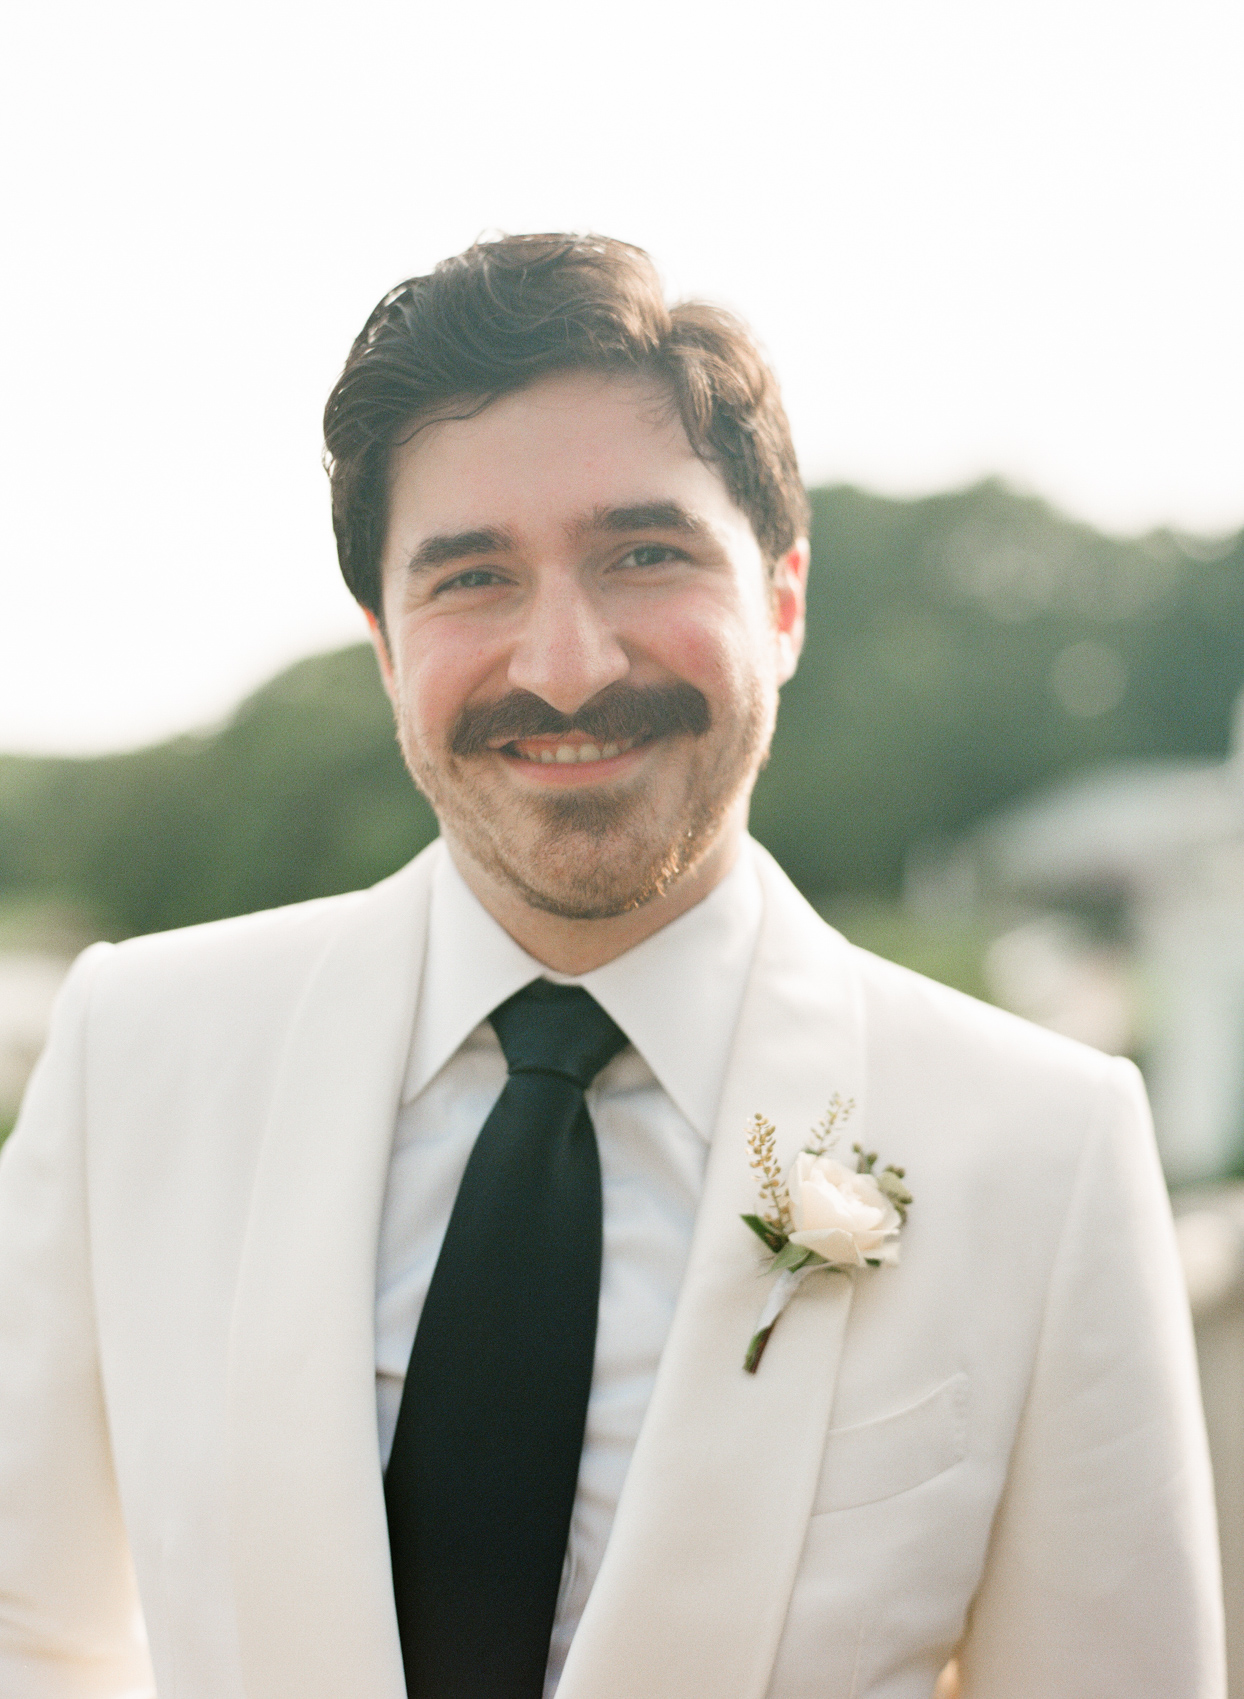 wedding groom portrait in black and white suit